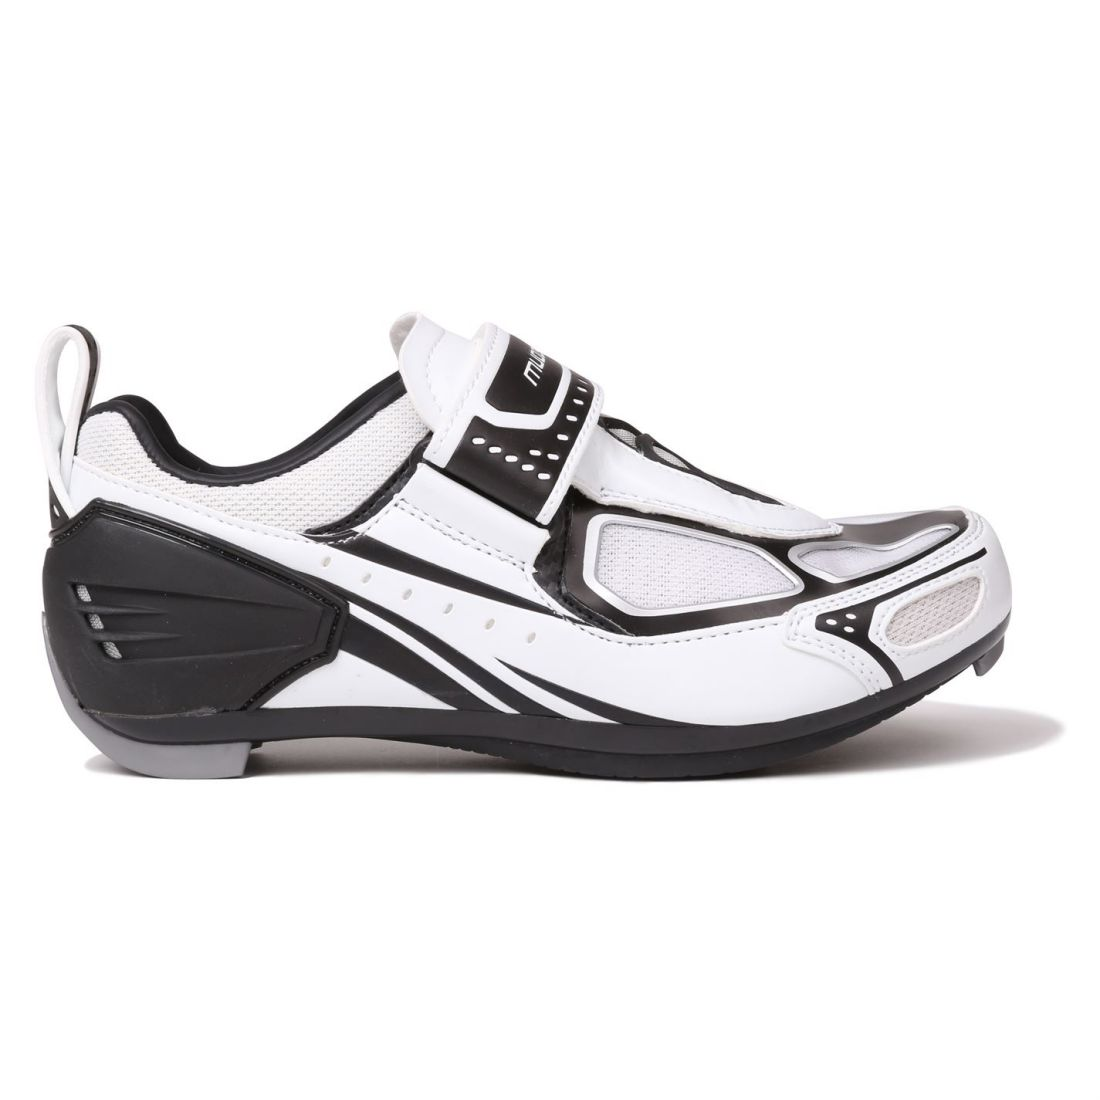 Muddyfox Childrens TRI 100 Cycling Shoes Bike Riding Footwear